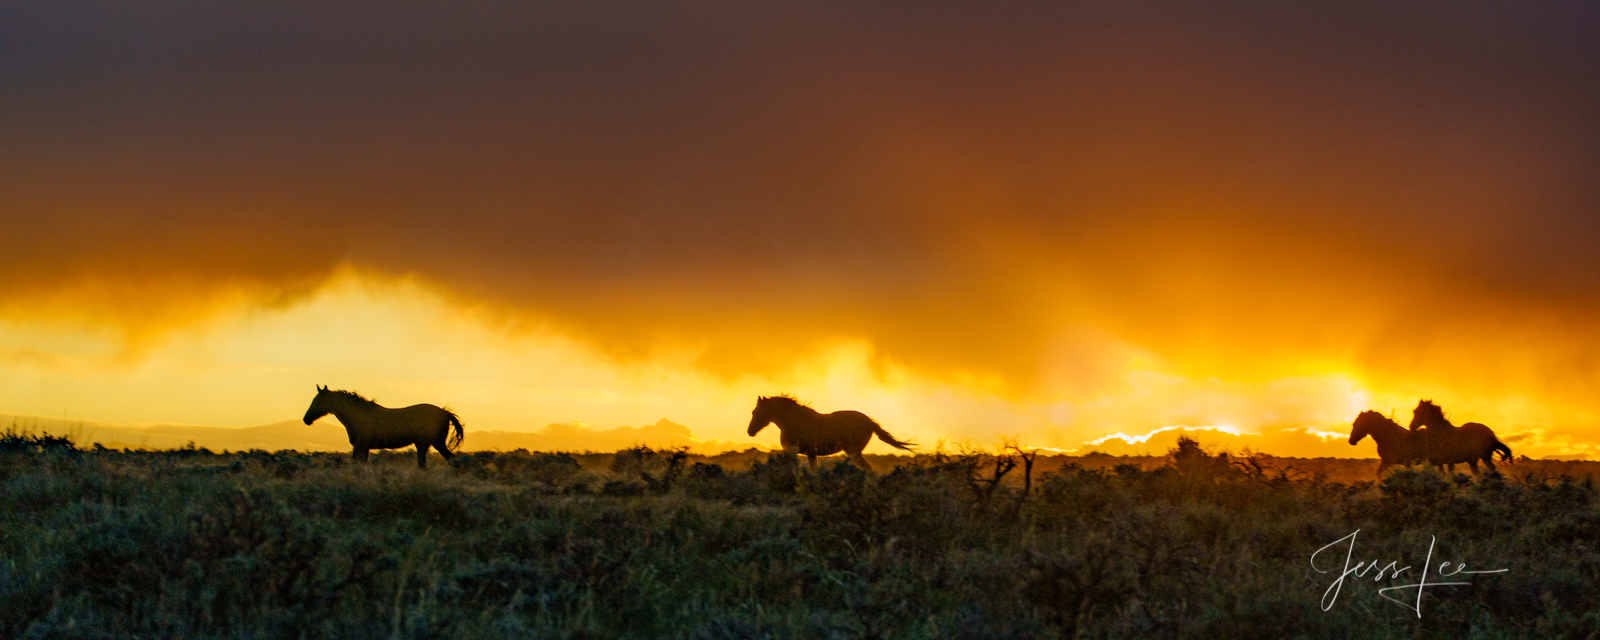 Fine Art Limited Edition Photography of Wild Herd of Mustang Horses. Wild Horses or Mustang herd running during a sunset storm...